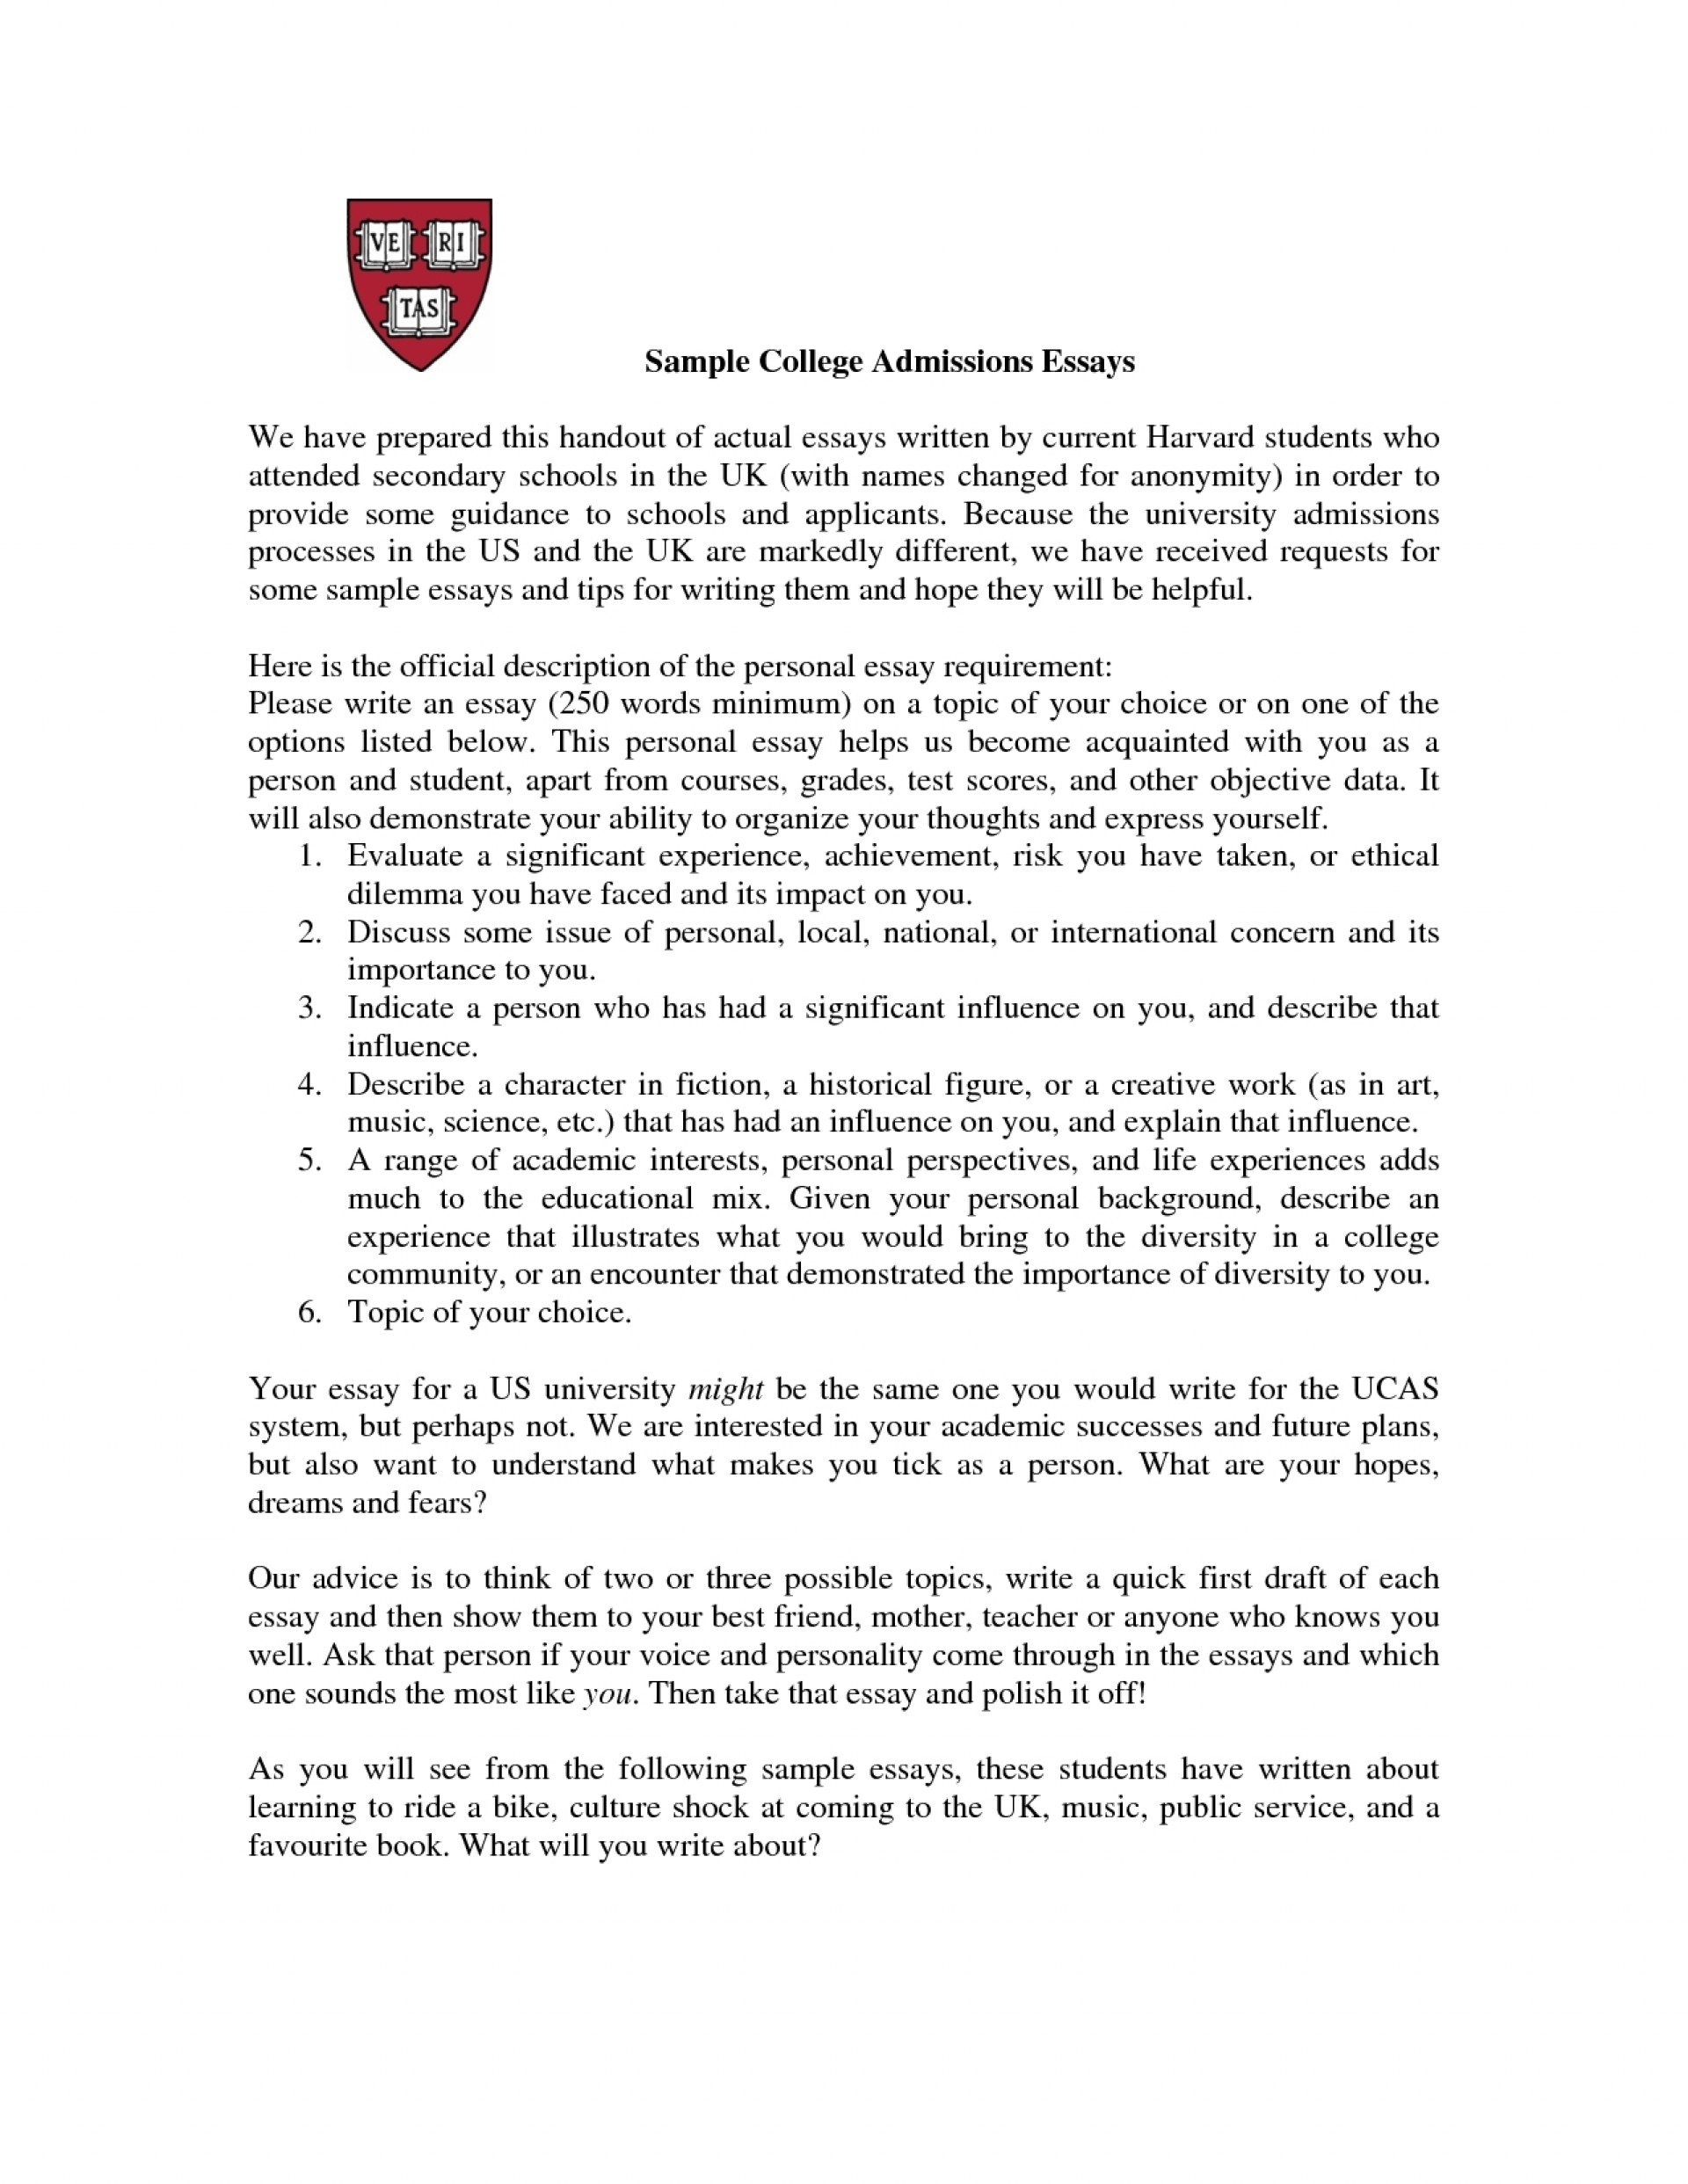 012 Essay Example College Essays For High School Application Dnndmyfreeipme How To Write Examples Of Admissions Format Acur Lunamedia Co Througho Admission Questions About Frightening Bad Worst Reddit Funny Prompts 1920